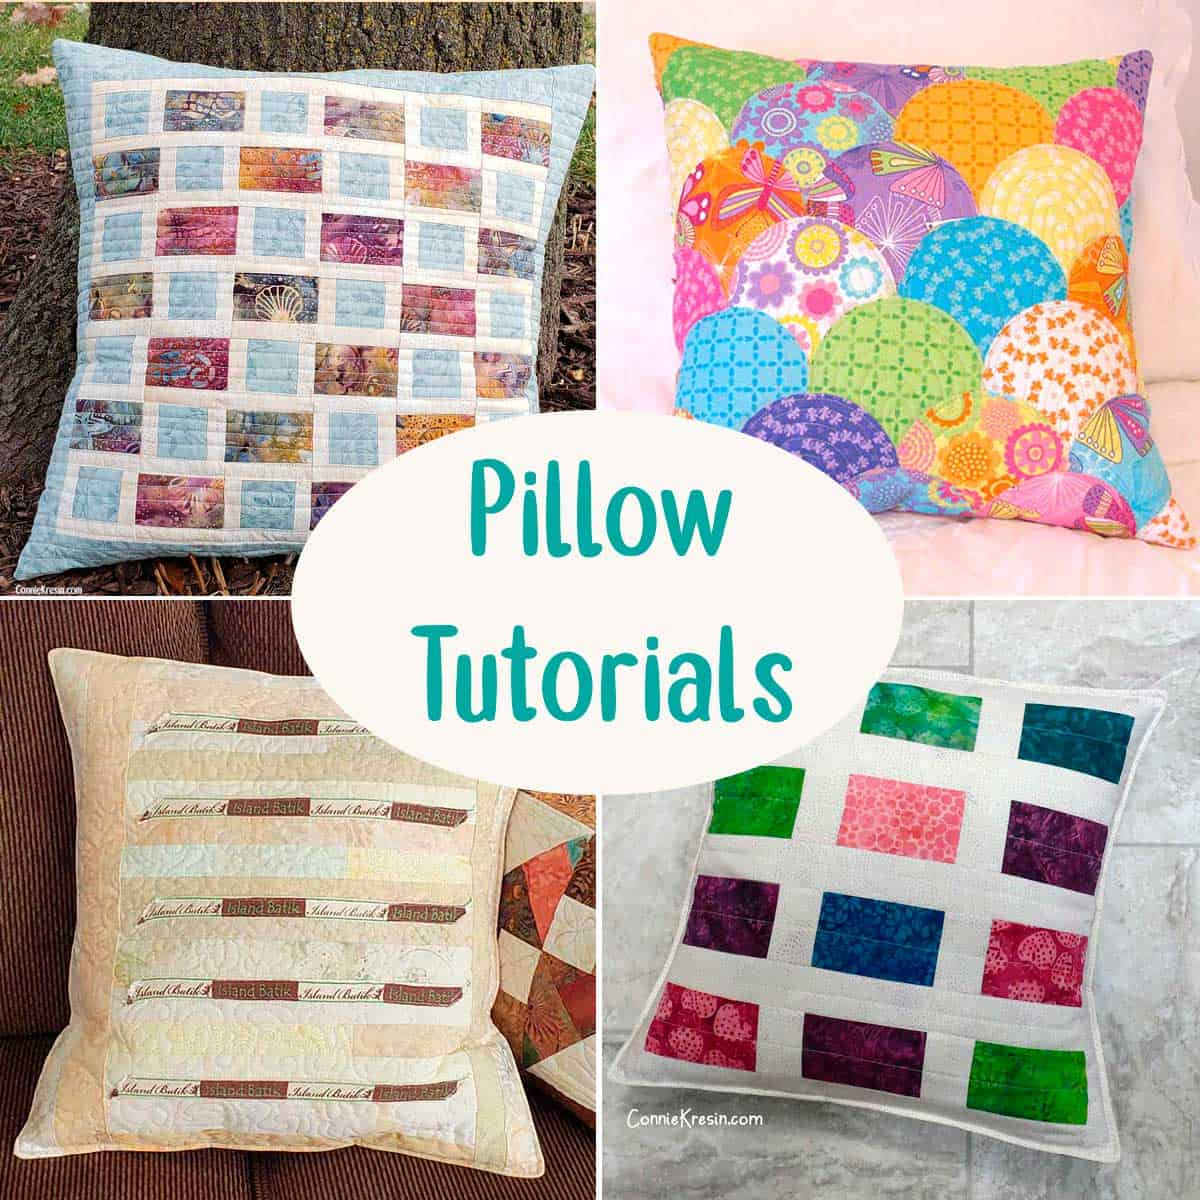 Pillow category of tutorials